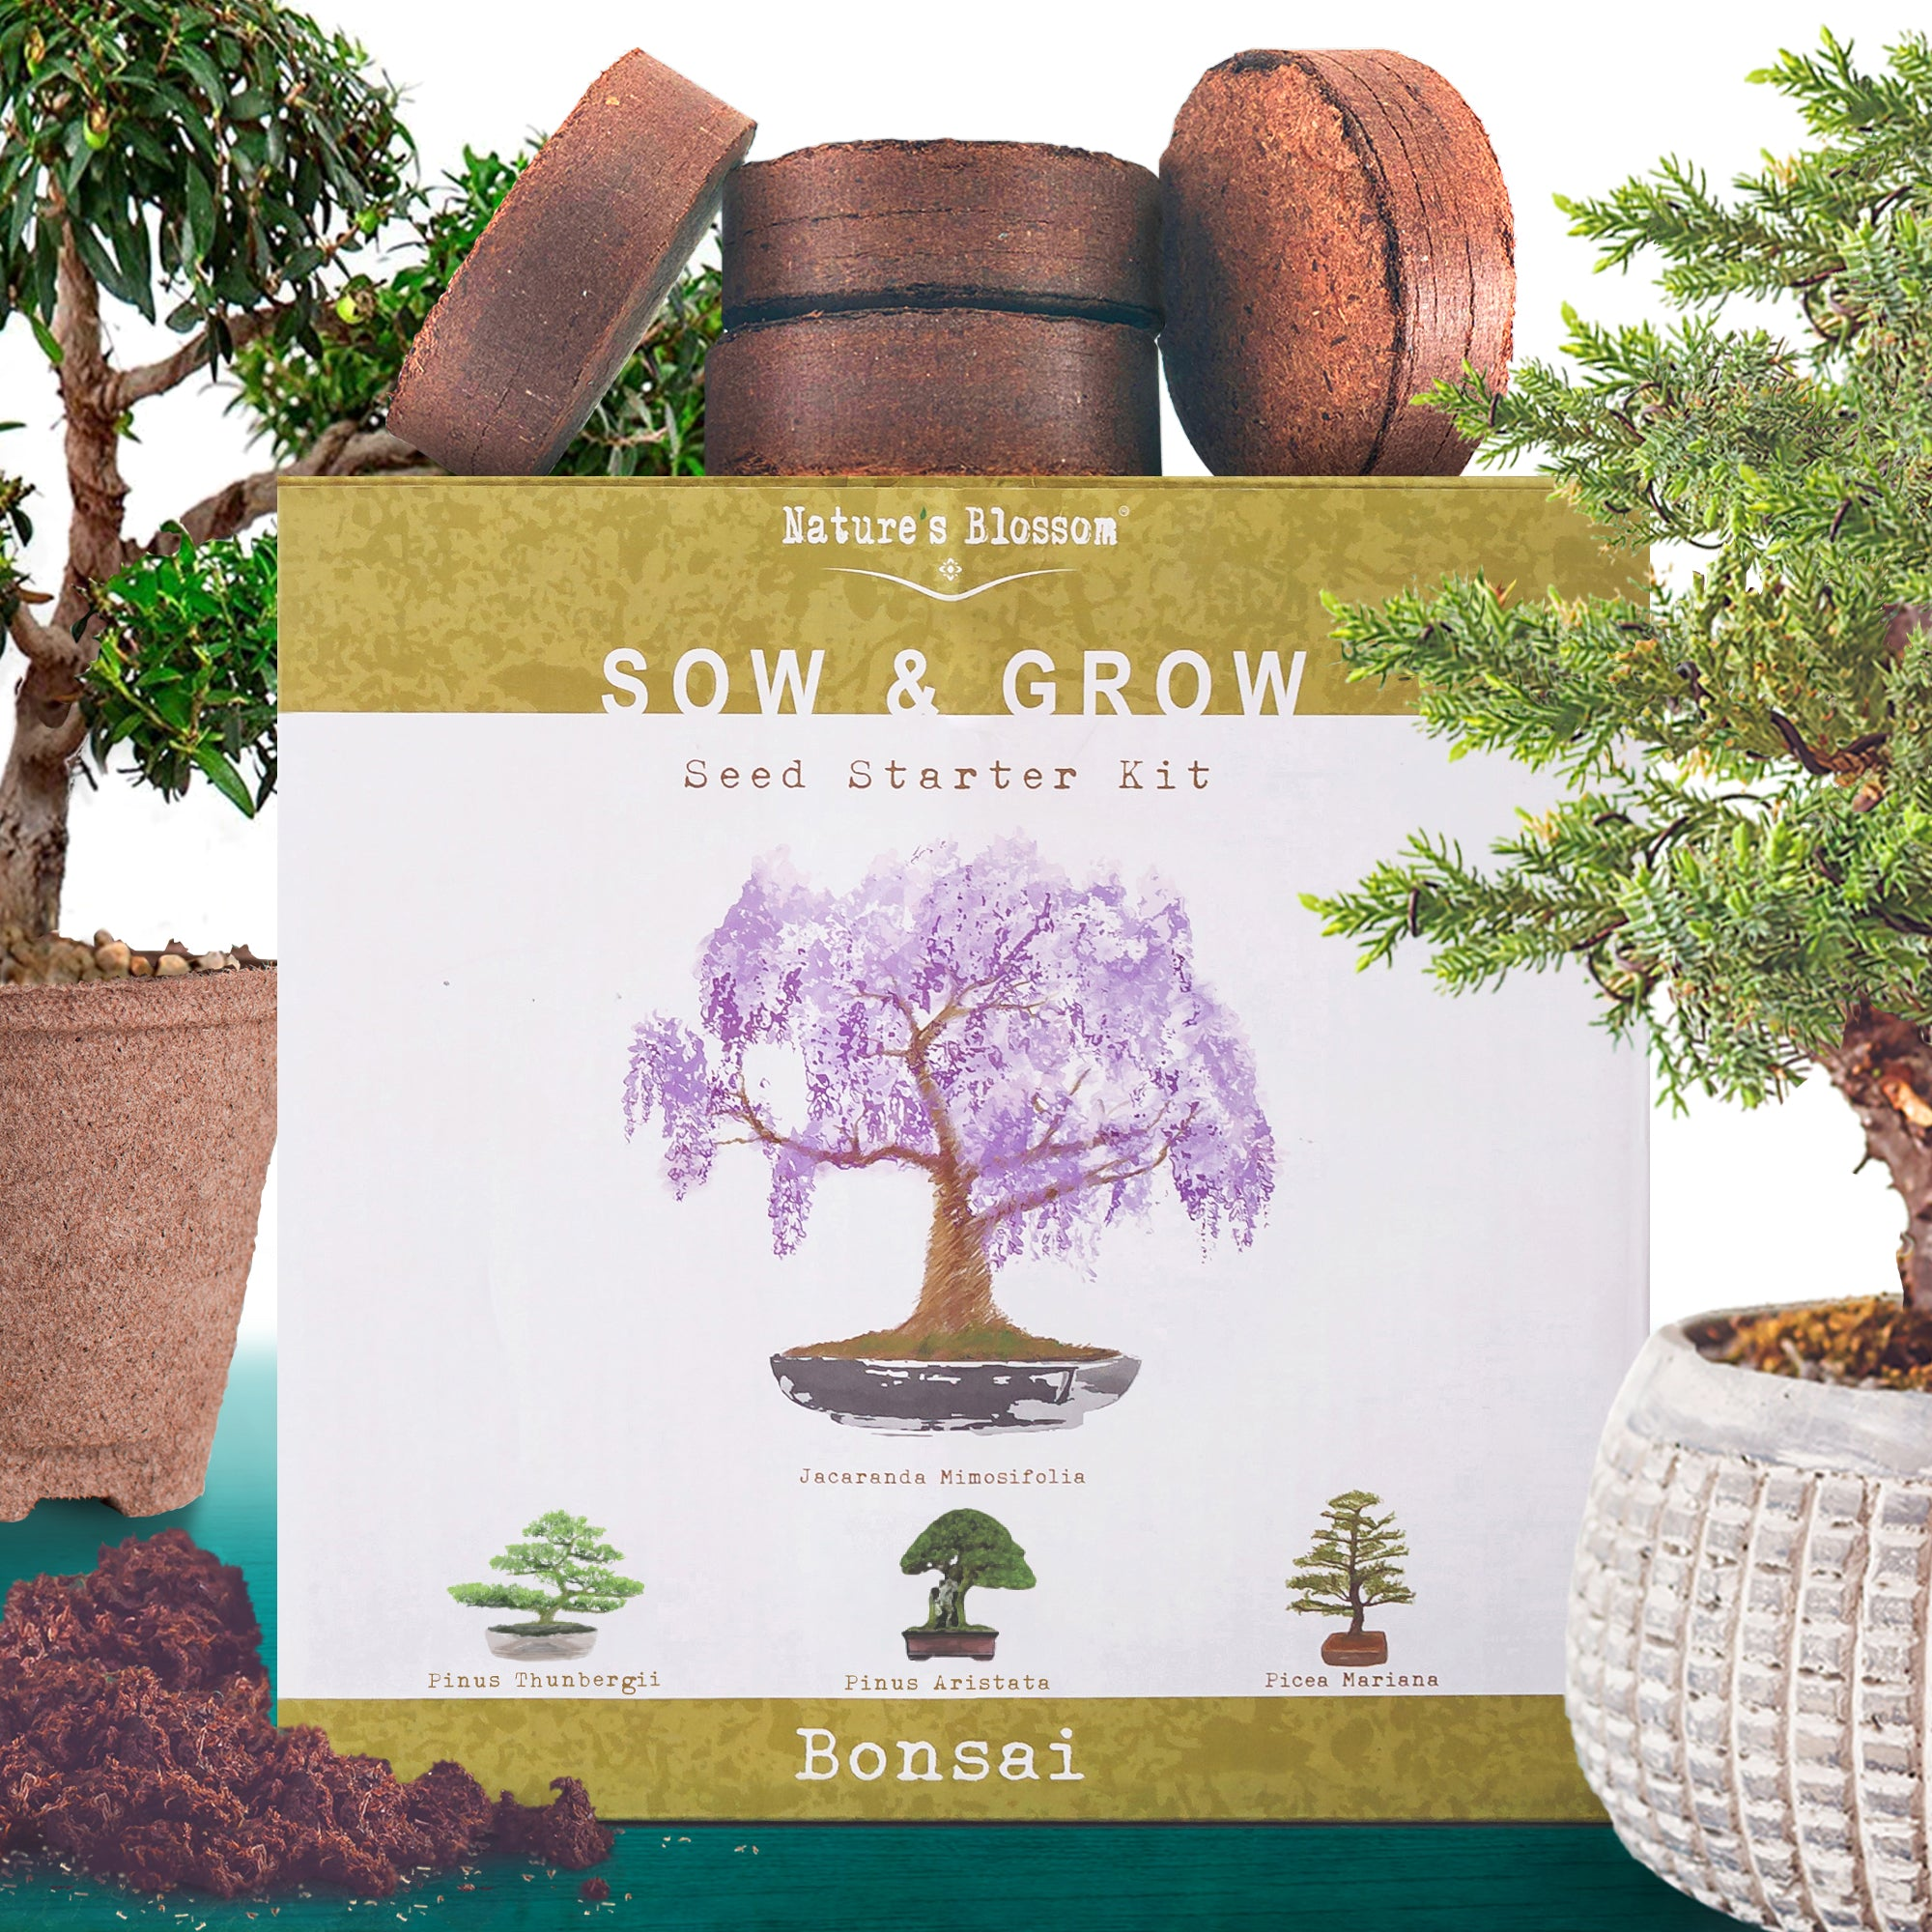 Nature S Blossom Bonsai Tree Seed Starter Kit Grow 4 Trees From Seed